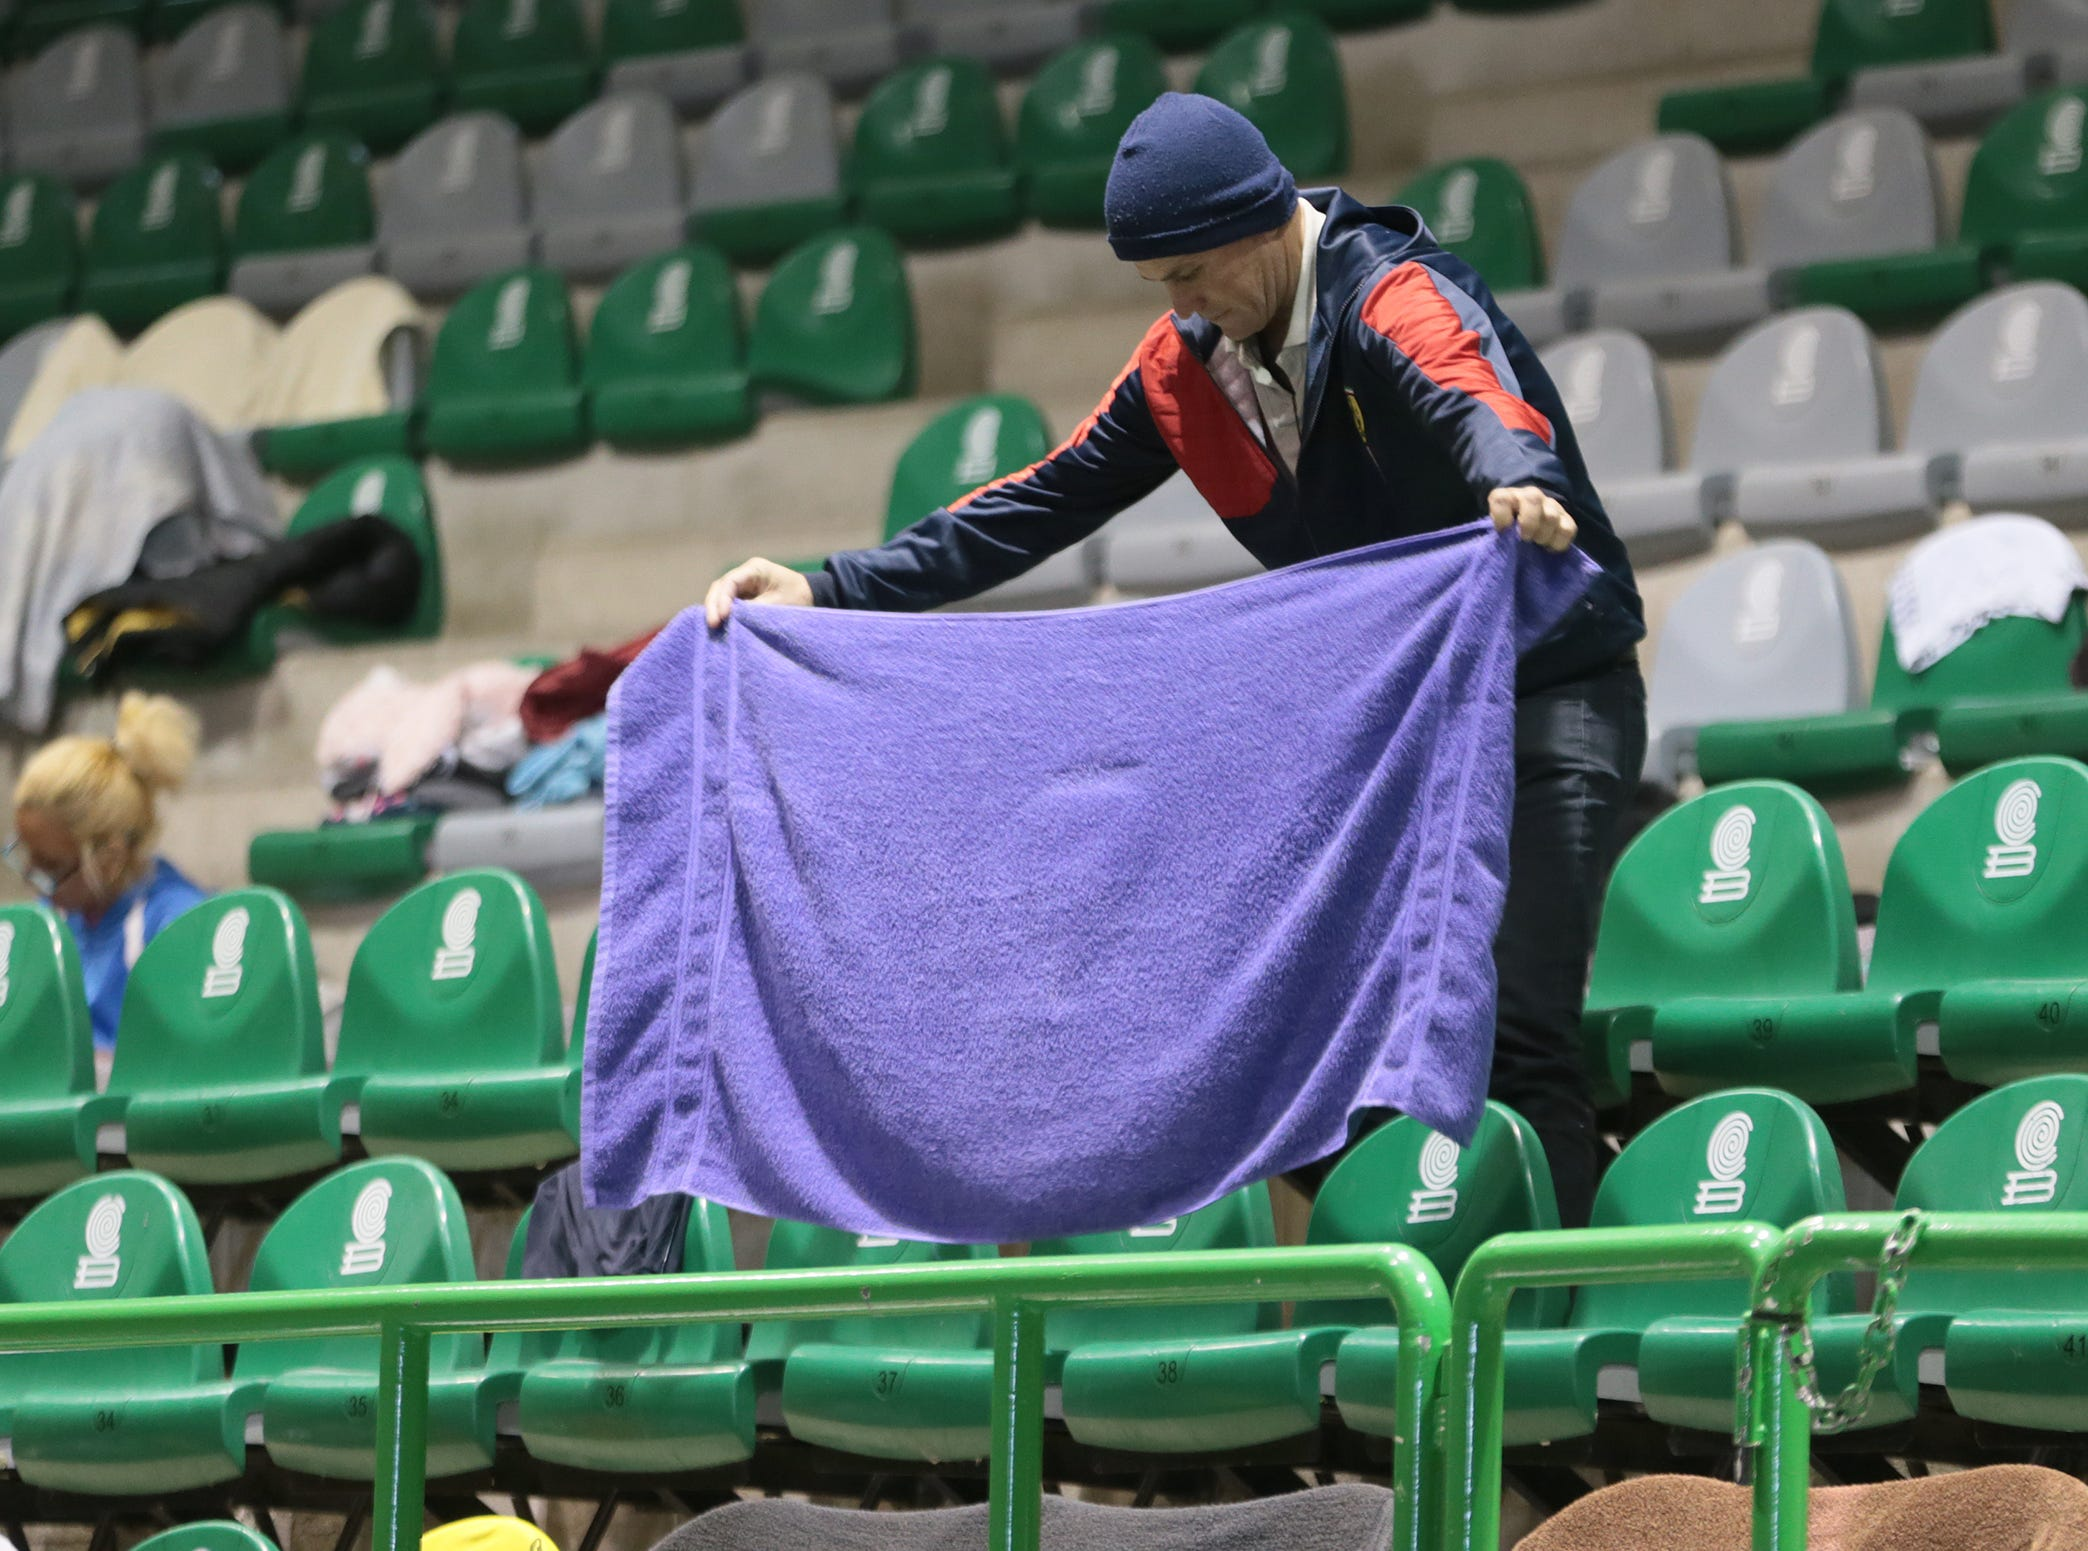 A Cuban migrant hangs his towel over the seating in the gym at Colegio de Bachilleres in Juarez.